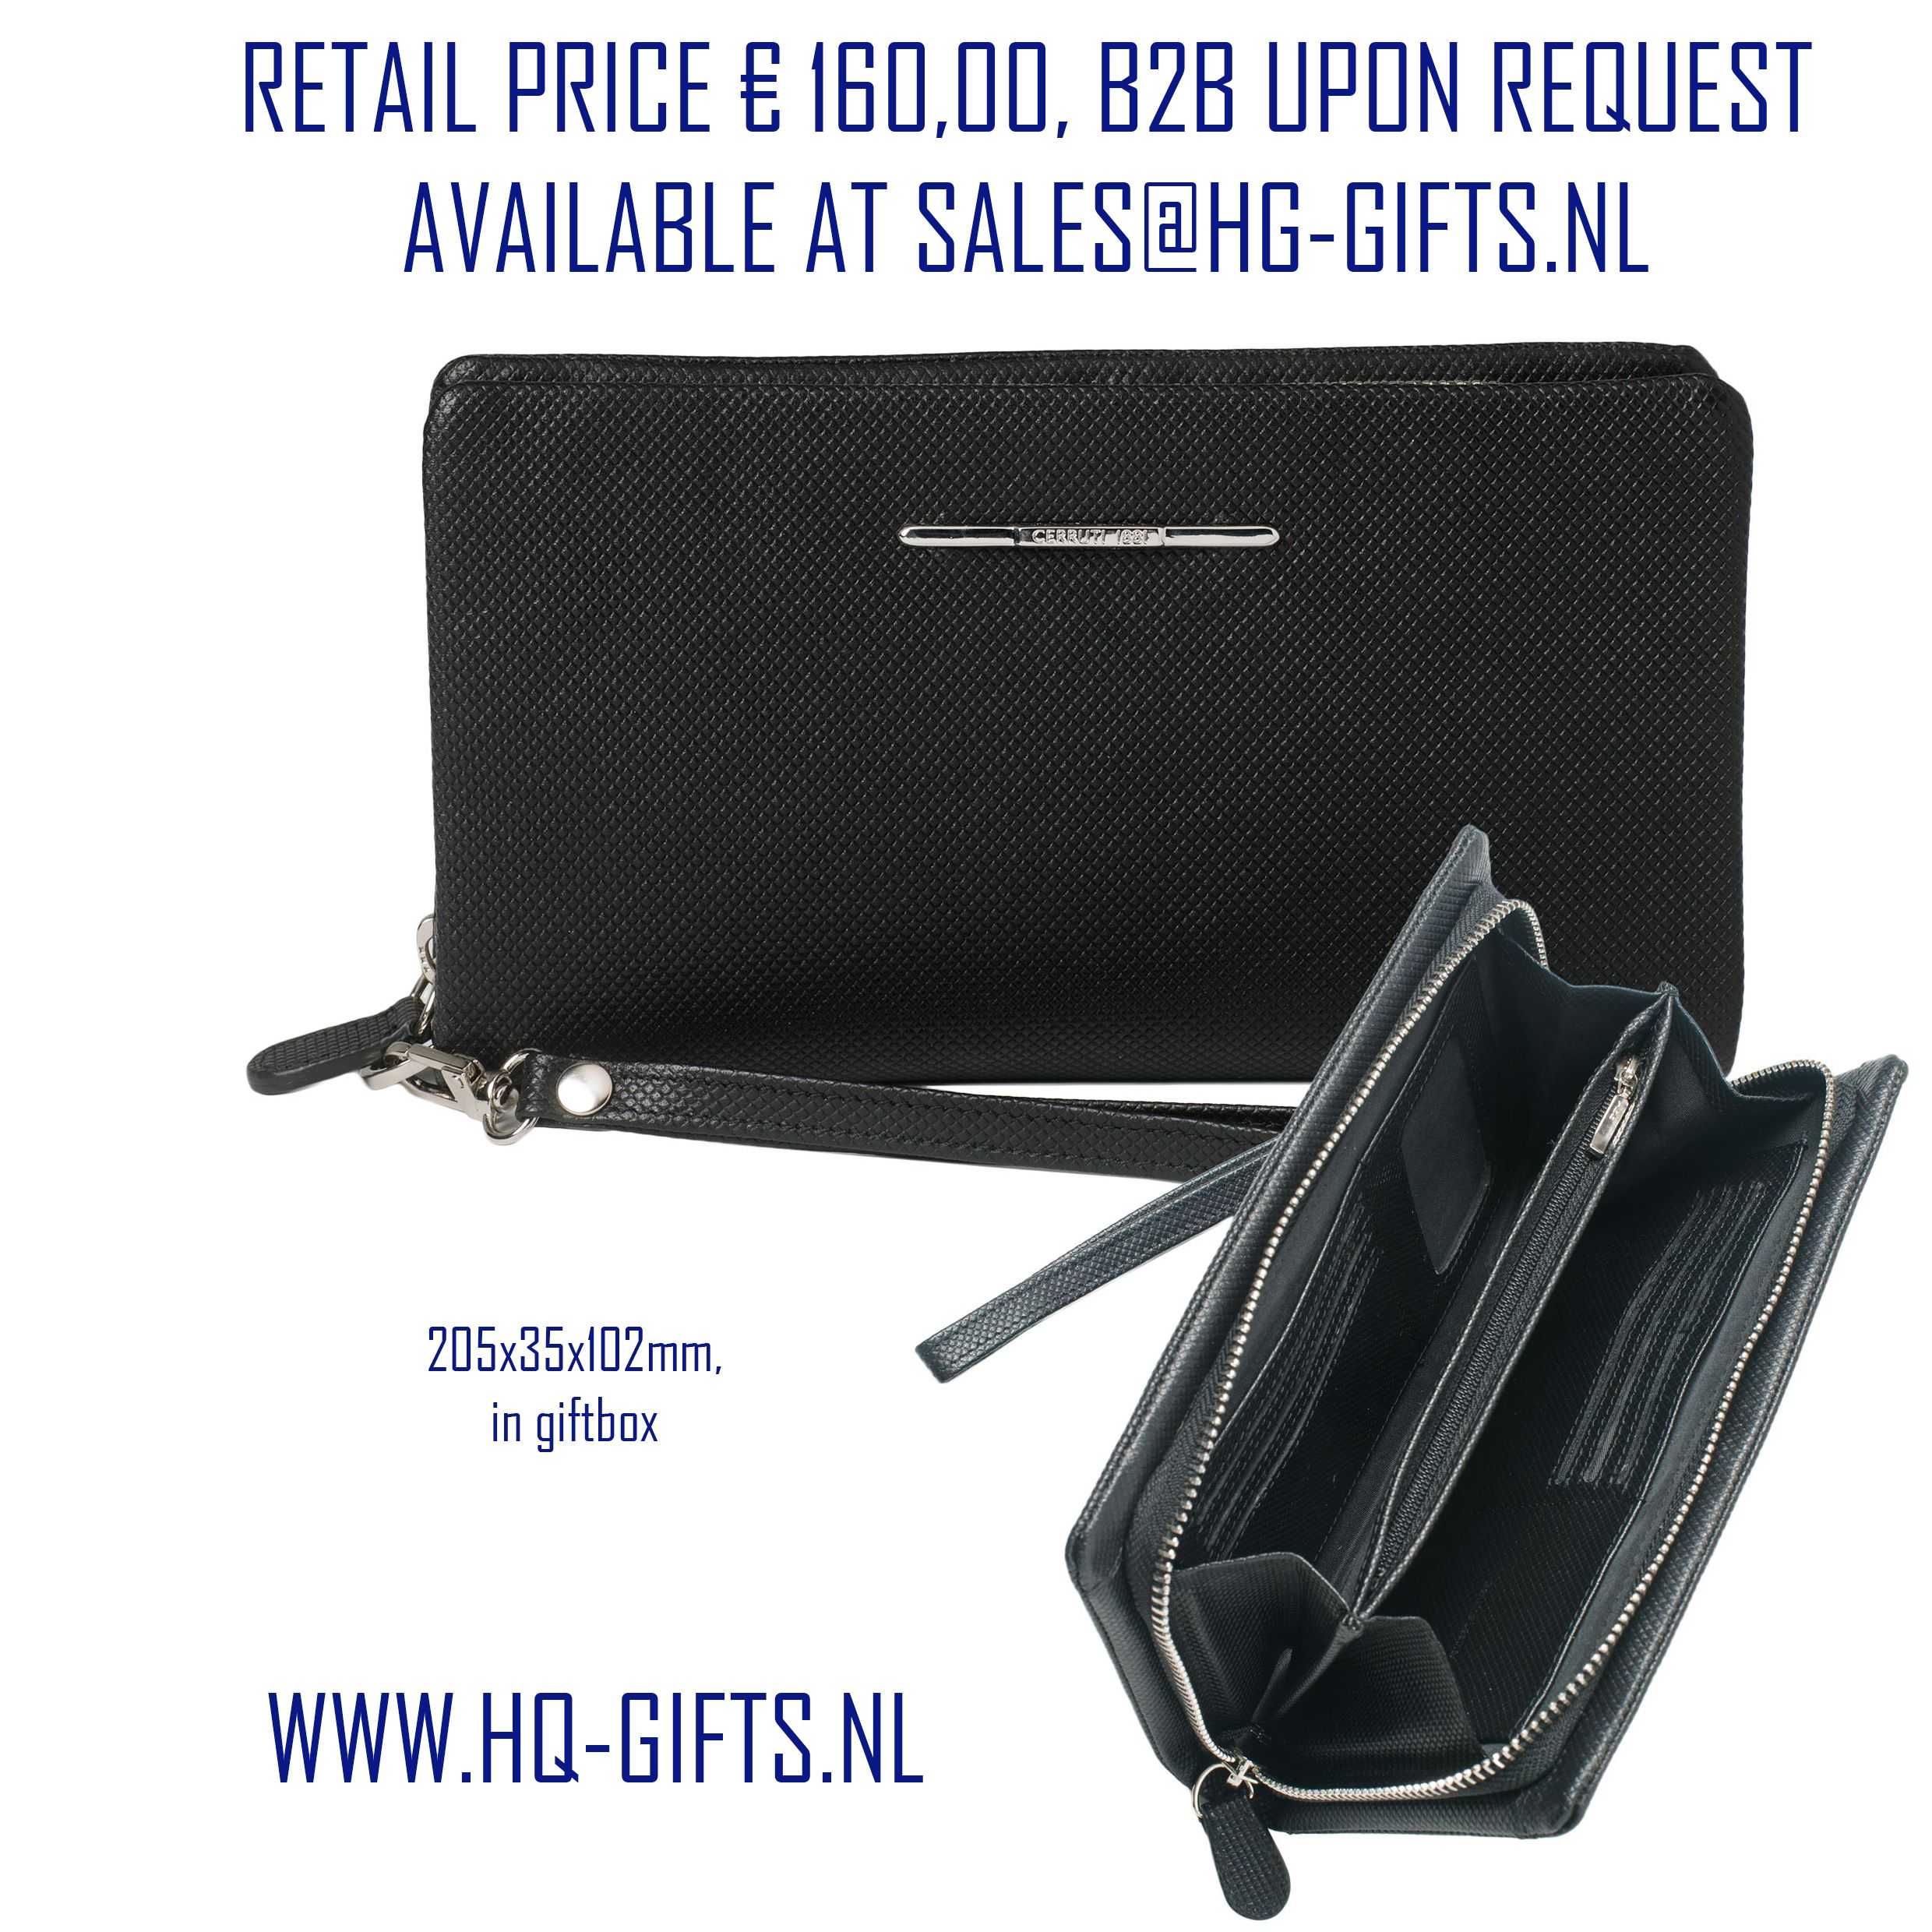 This beautiful black leather travel wallet by Cerruti 1881 suits all your important travel documents It offers space for eight credit cards and has two compartments for bills. With its simple, elegant and convenient design makes it the ideal accessory for business. The Cerruti 1881 'Real' line offers also a passport holder, cabin size trolley, wallets and stationery.